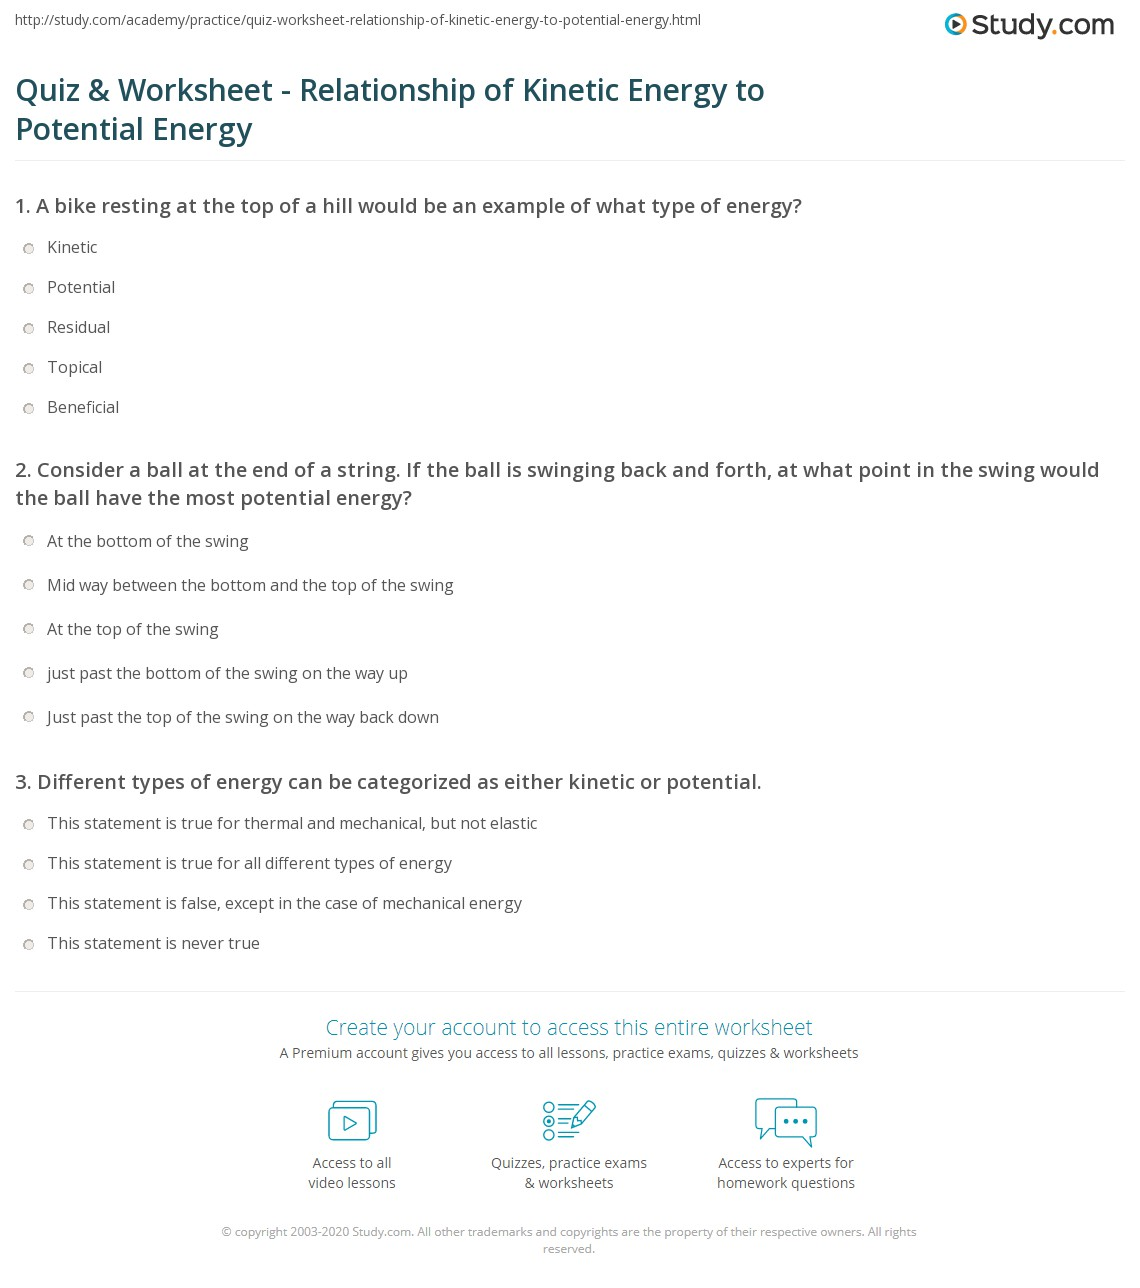 introduction to energy worksheet answers - Primus Green Energy